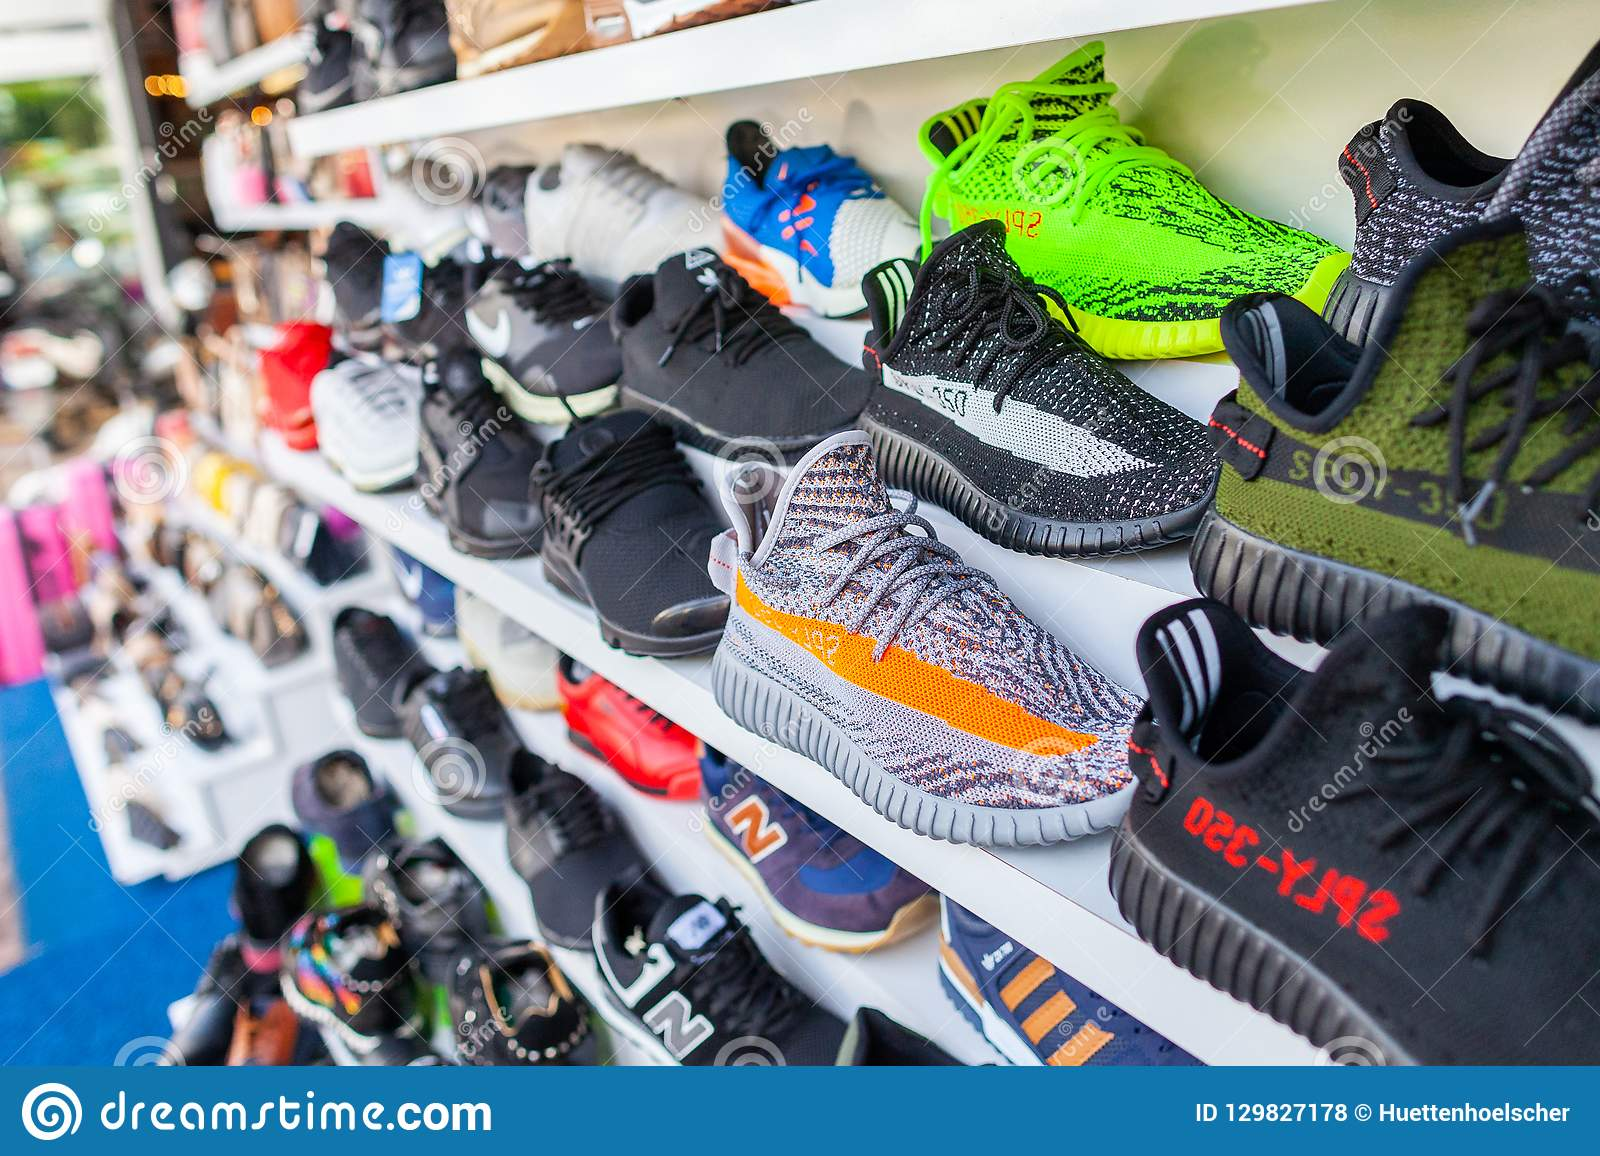 99c5c5e3685a Shoes Of Different Brands Stands In A Shop Editorial Stock Photo ...